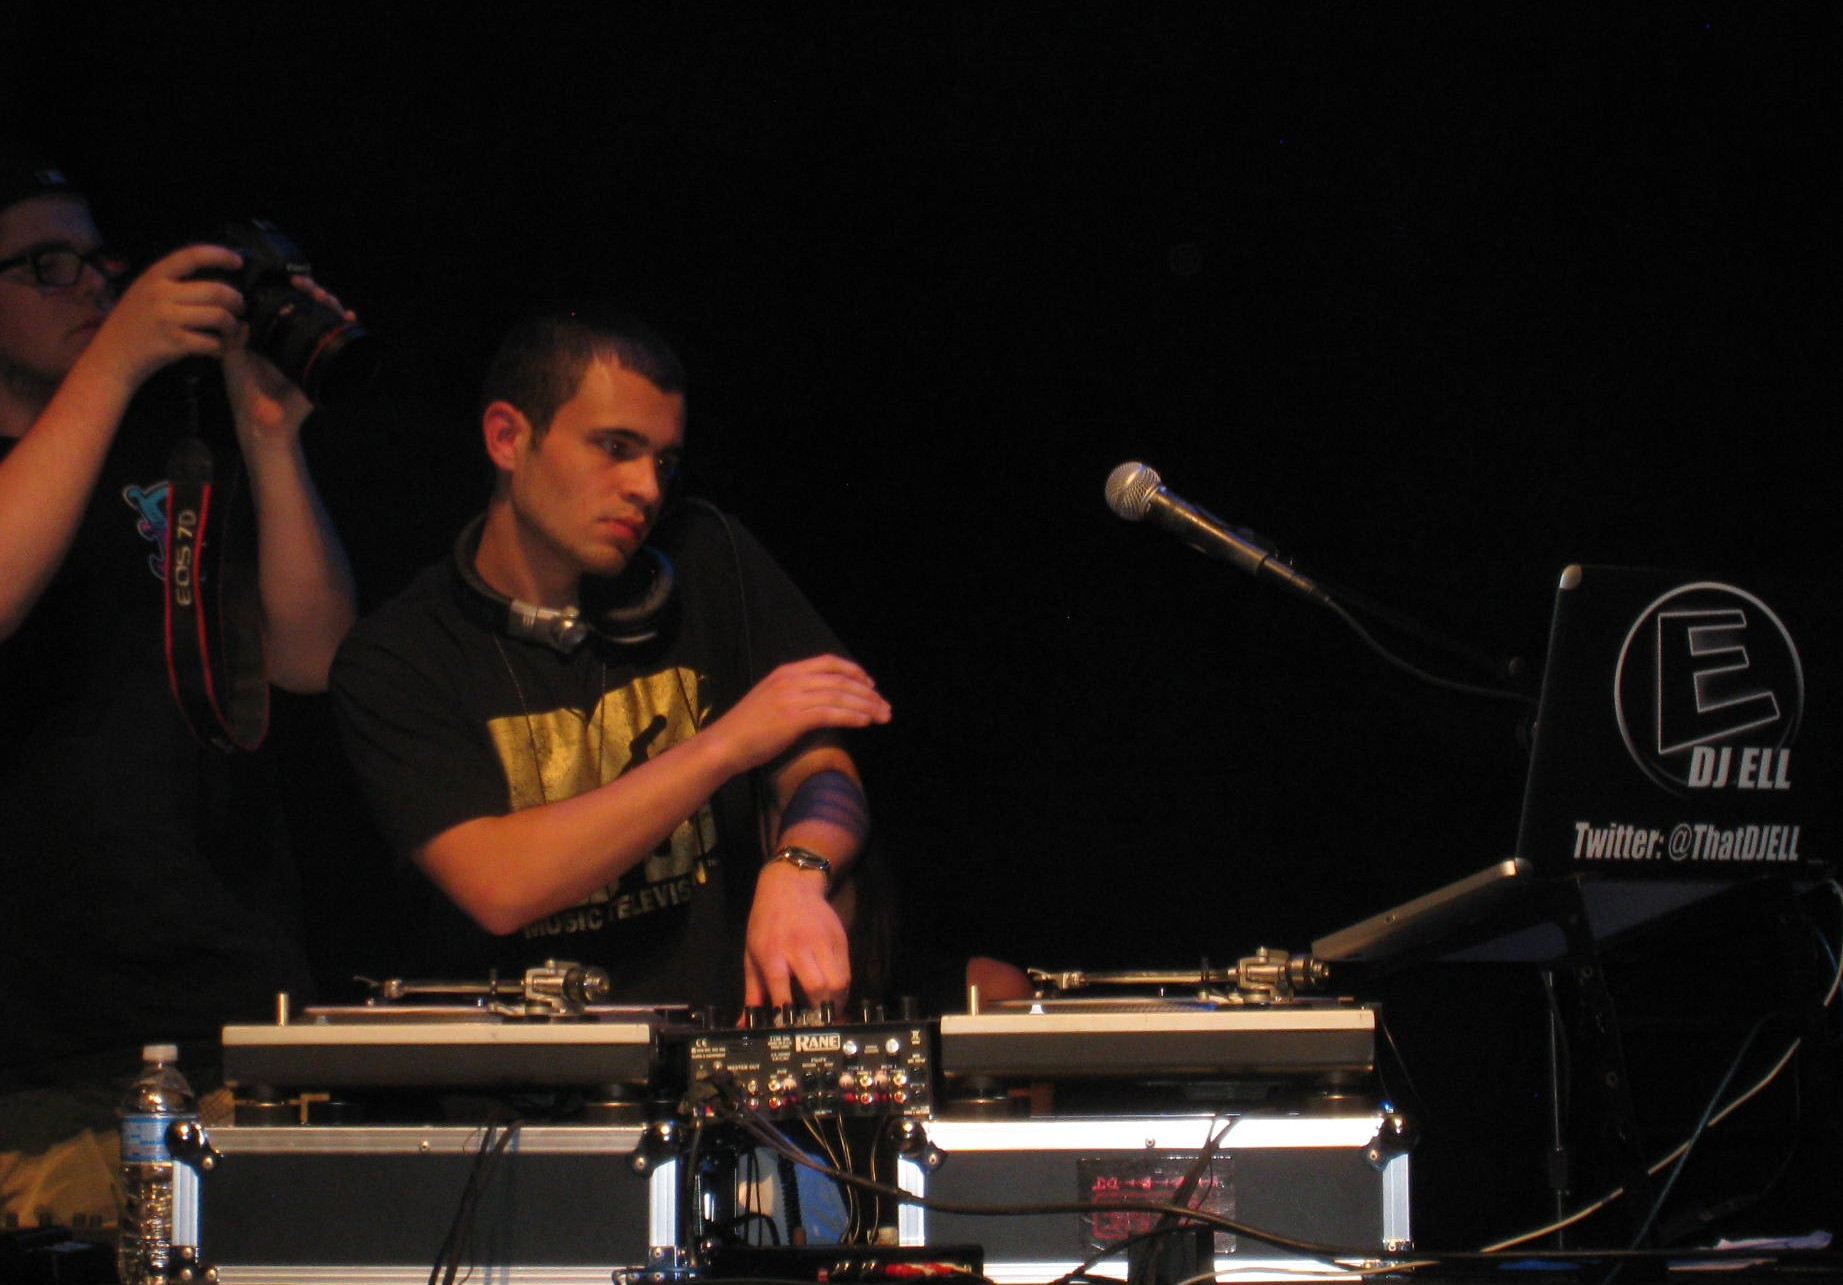 DJ Ell at the Power Center Ann Arbor Michigan Breakin' Curfew 2012